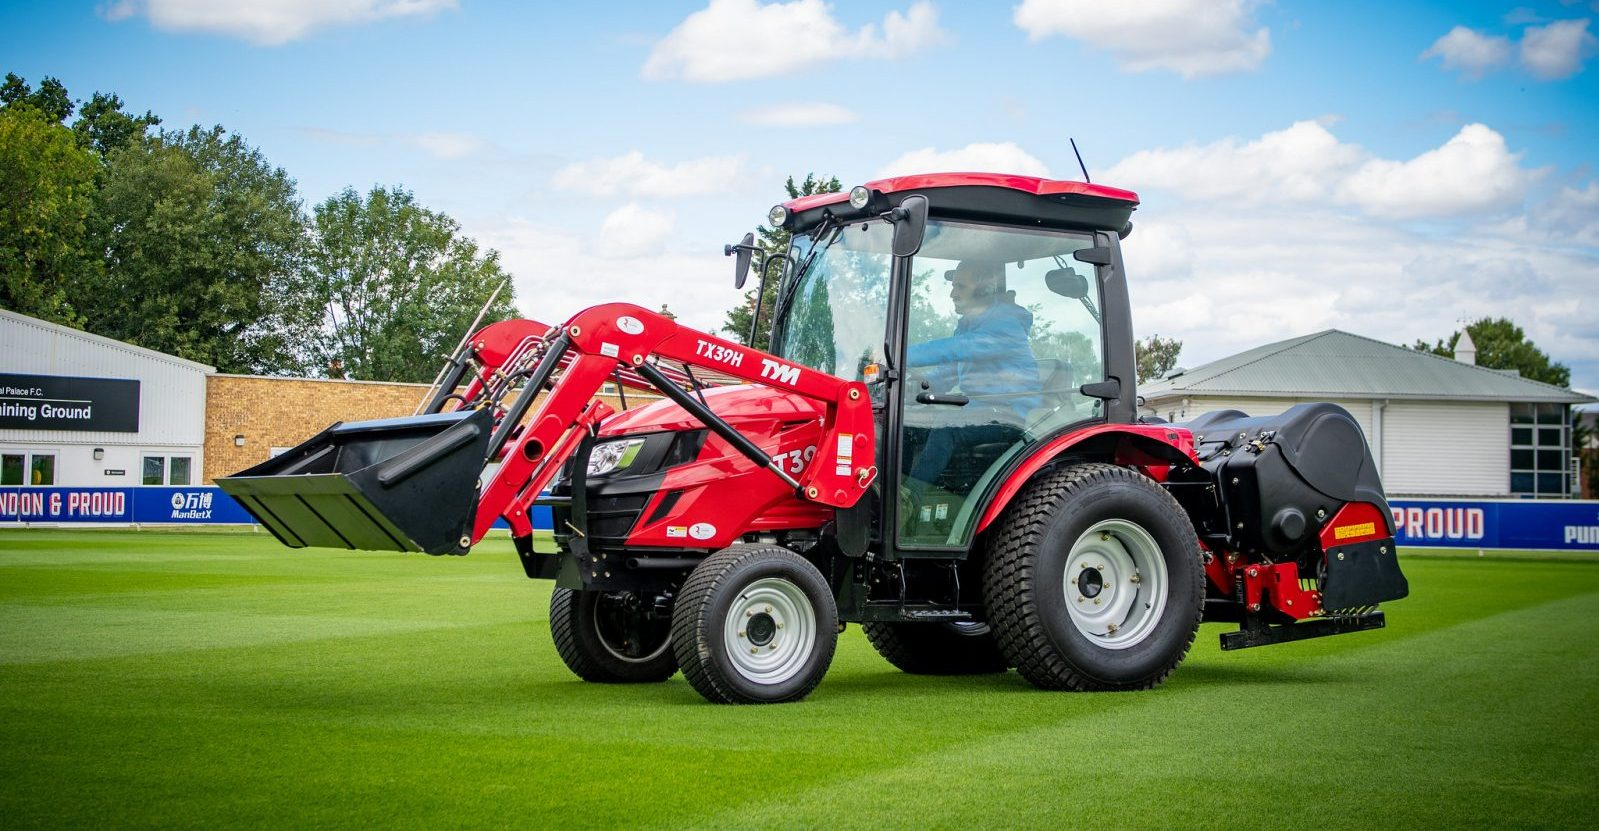 New TYM tractors for Crystal Palace stadium